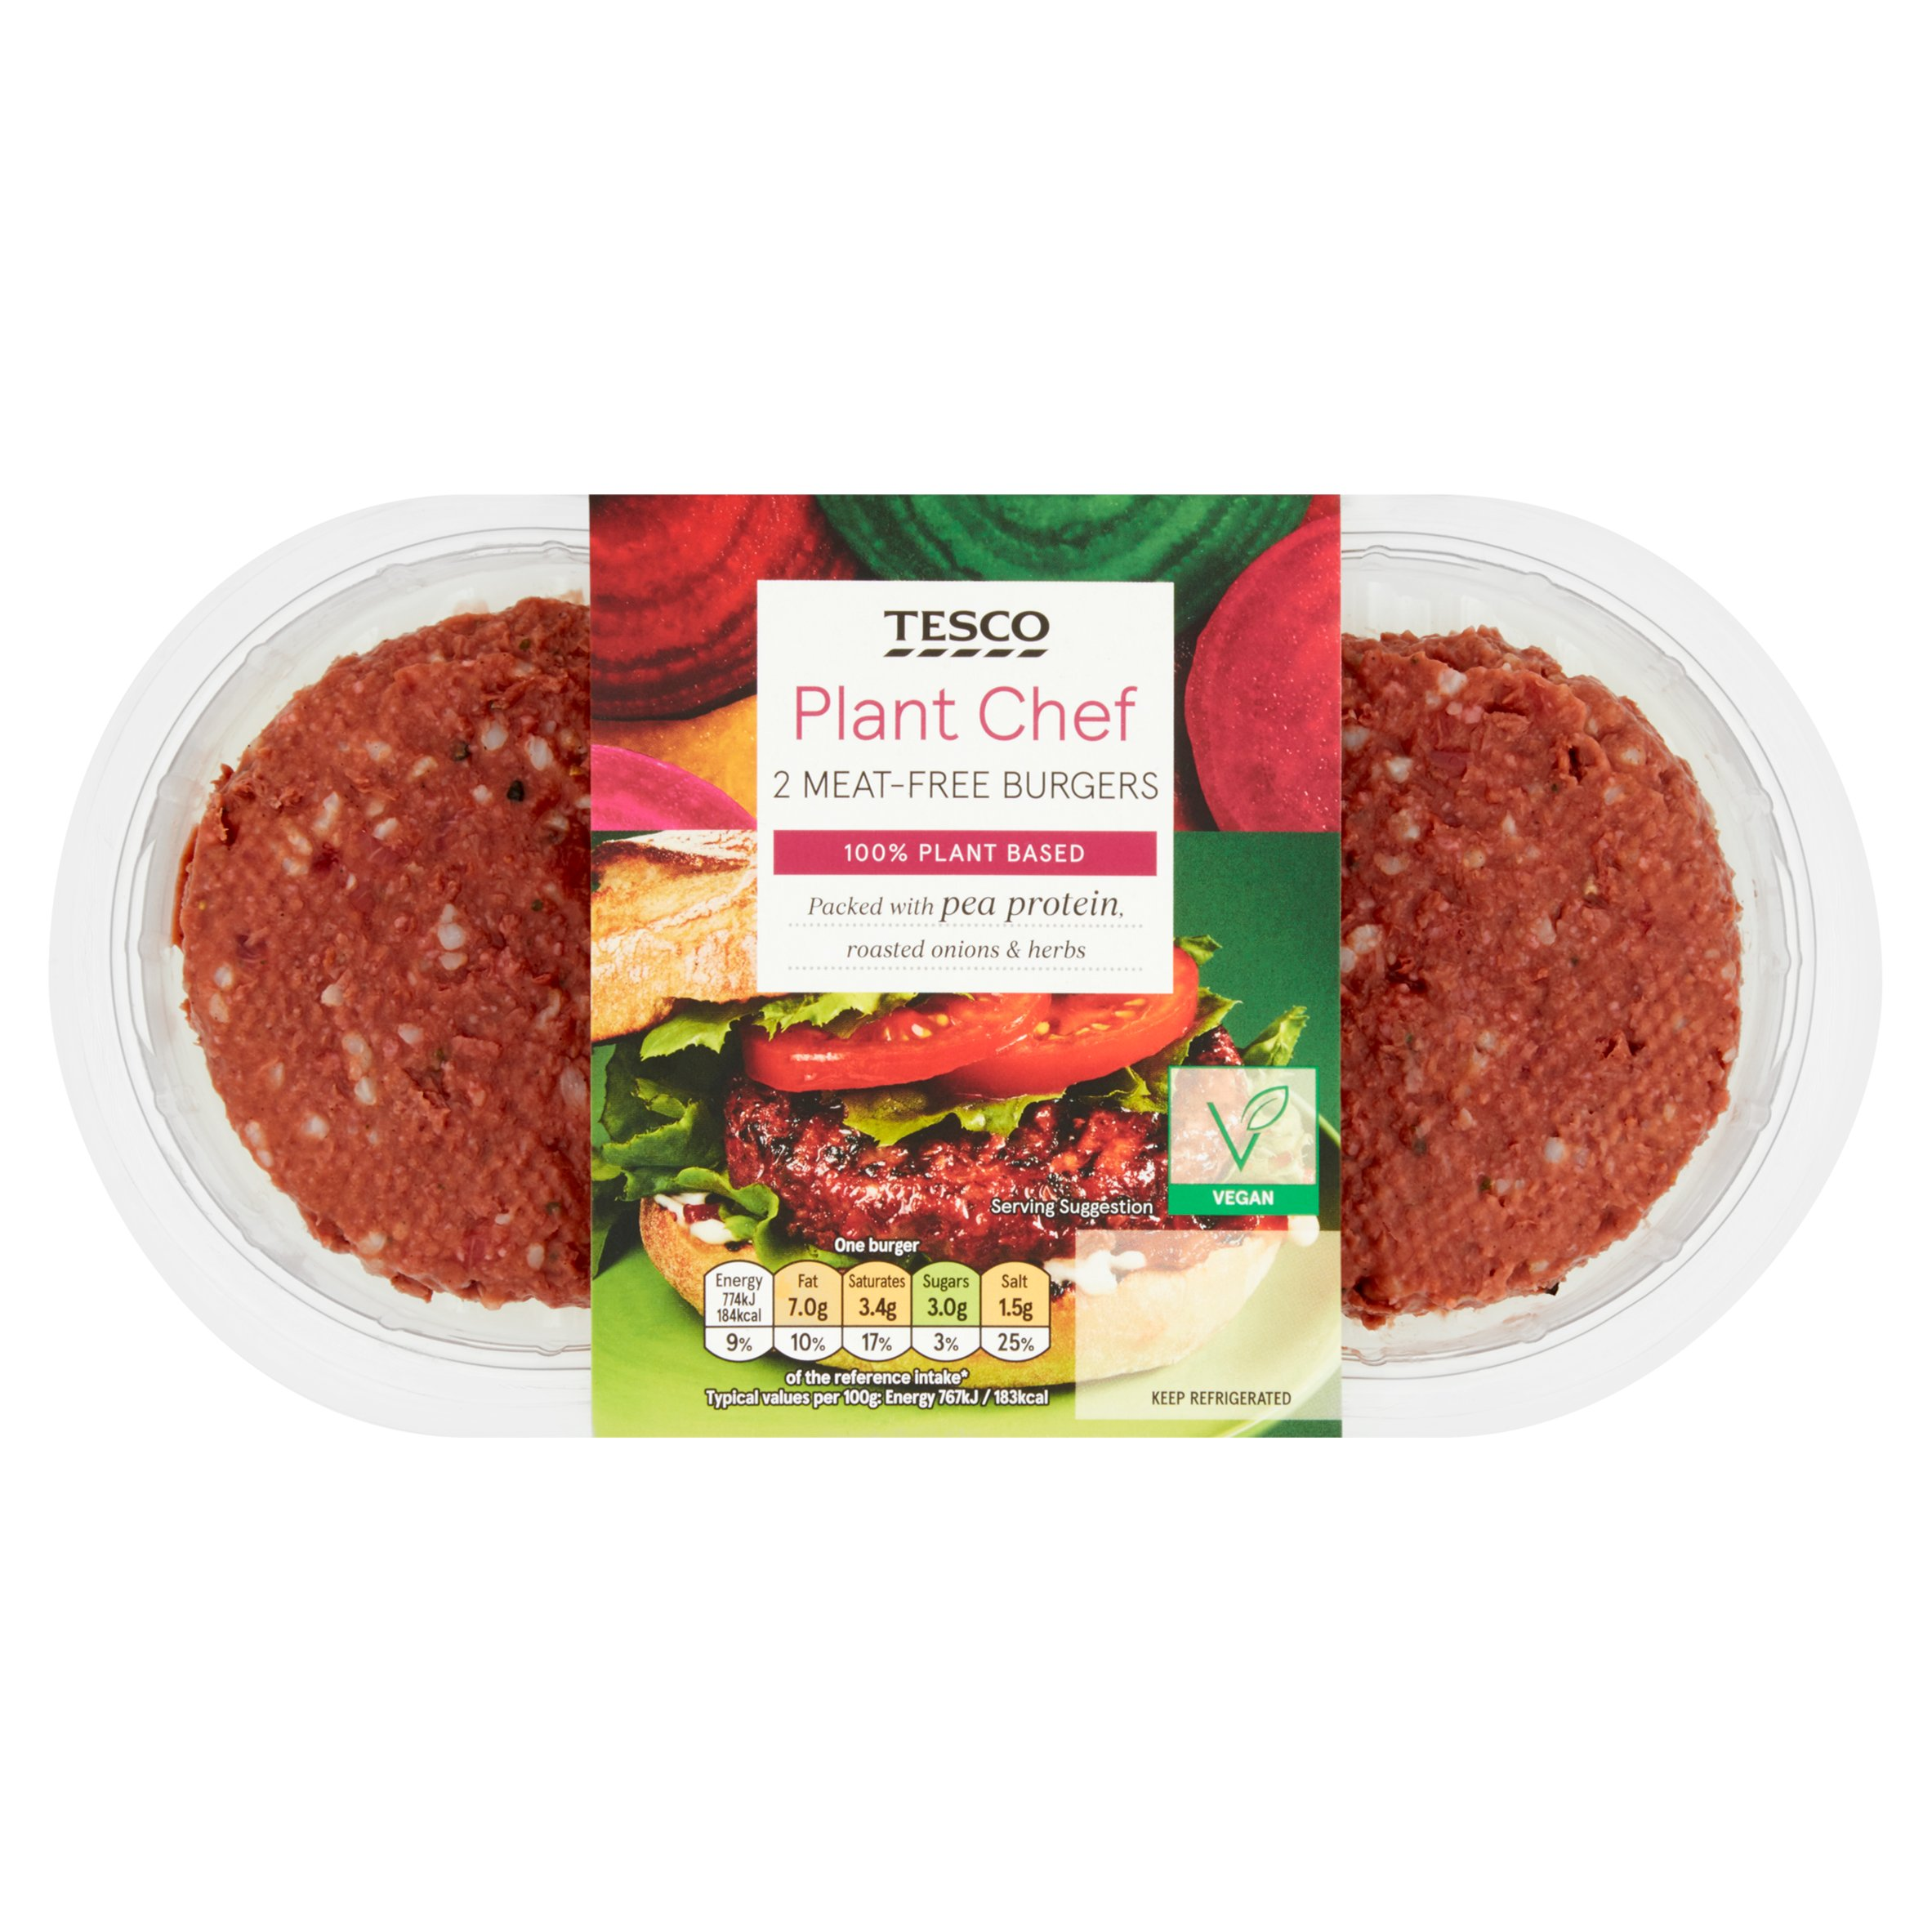 Tesco Plant Chef 2 Meat Free Burgers 226G